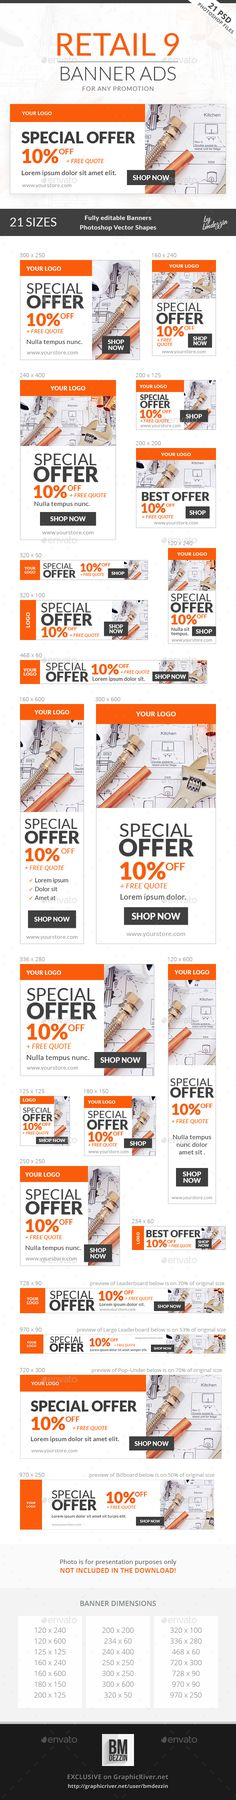 Retail Web Banner Ads Template PSD #design Download: http://graphicriver.net/item/retail-9-banner-ads/13590561?ref=ksioks